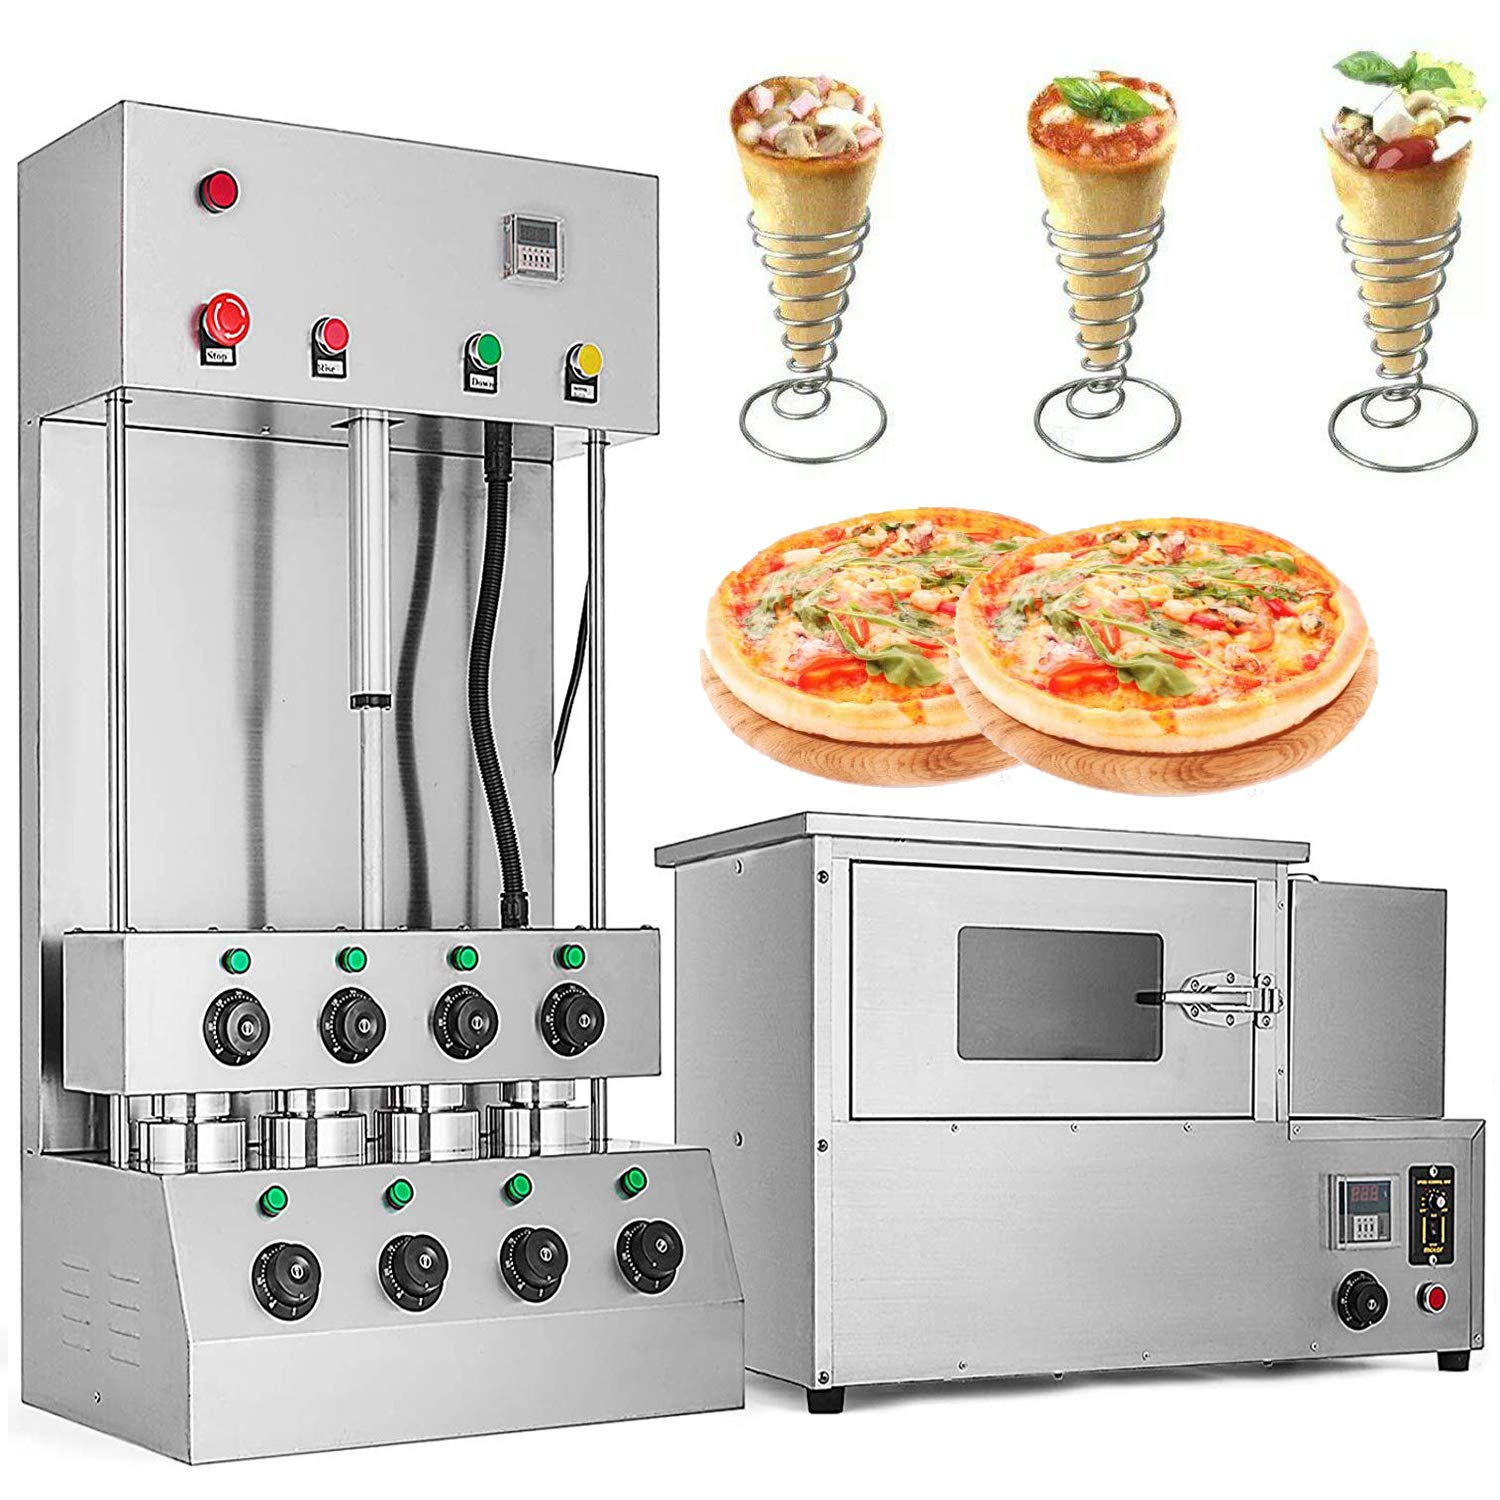 VEVOR Commercial Pizza Cone Forming Machine 110V Rotational Pizza Oven 2 in 1 Automatic Handheld Pizza Cone Maker with Pizza Oven 304 Stainless Steel (Adjustable temperature and Rotary Speed)